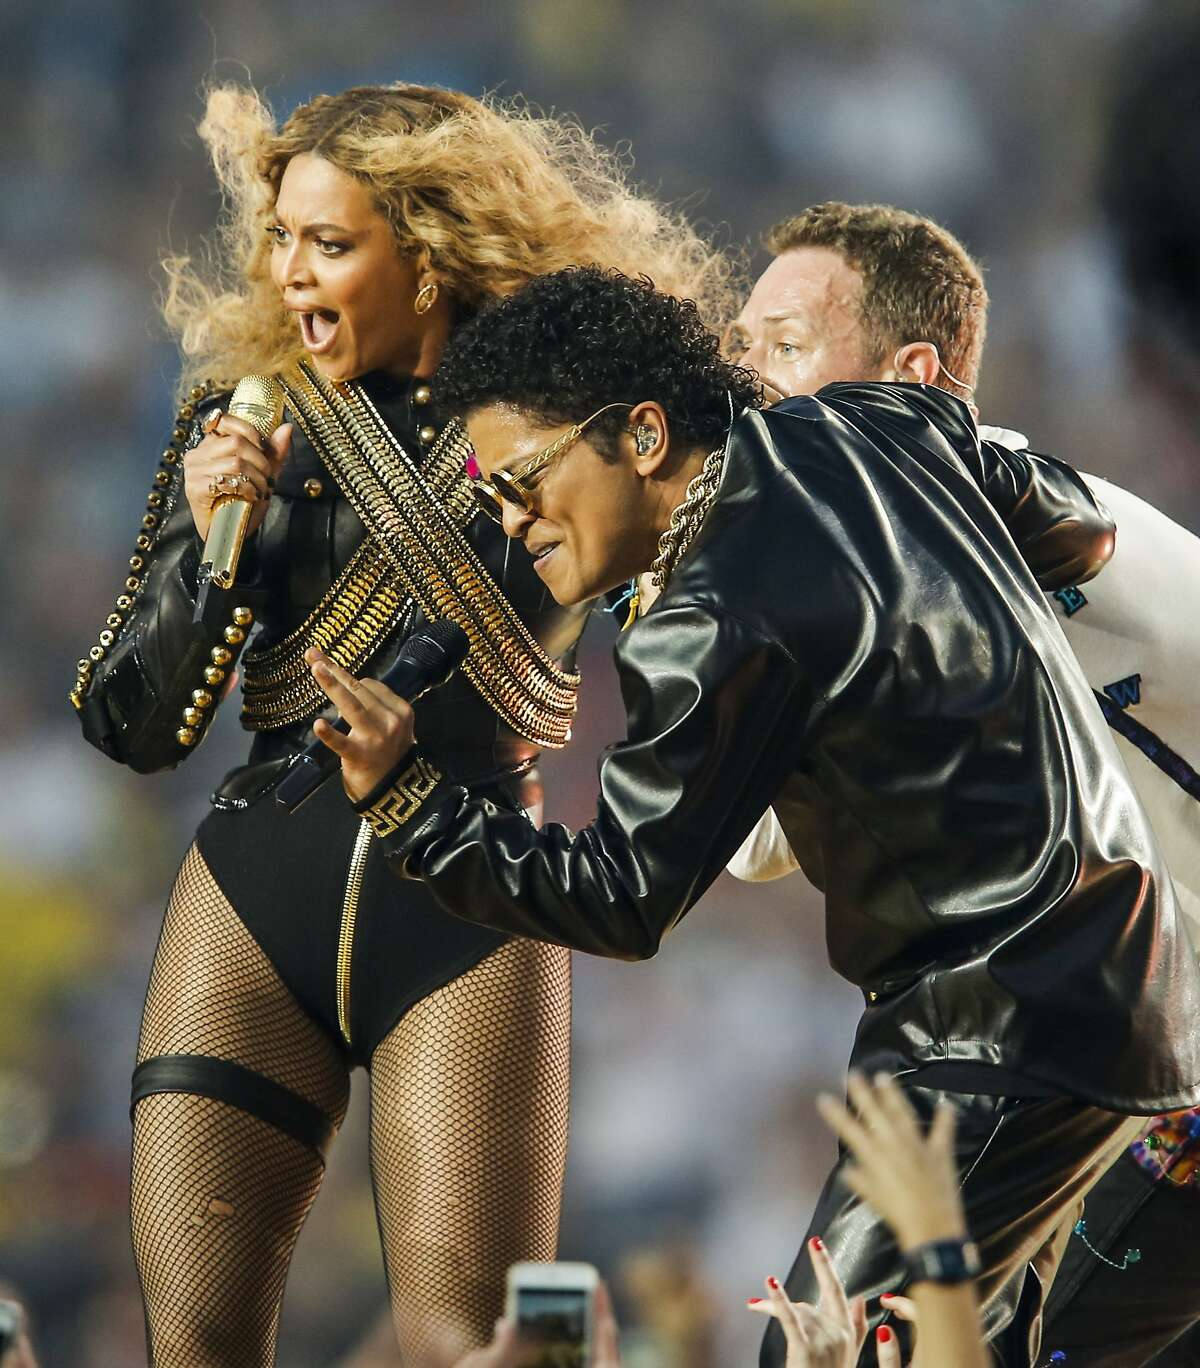 Beyonce, Chris Martin, and Bruno Mars perform during the Halftime Show at Super Bowl 50 between the Carolina Panthers and the Denver Broncos at Levi's Stadium on Sunday, Feb. 7, 2016 in Santa Clara, Calif.